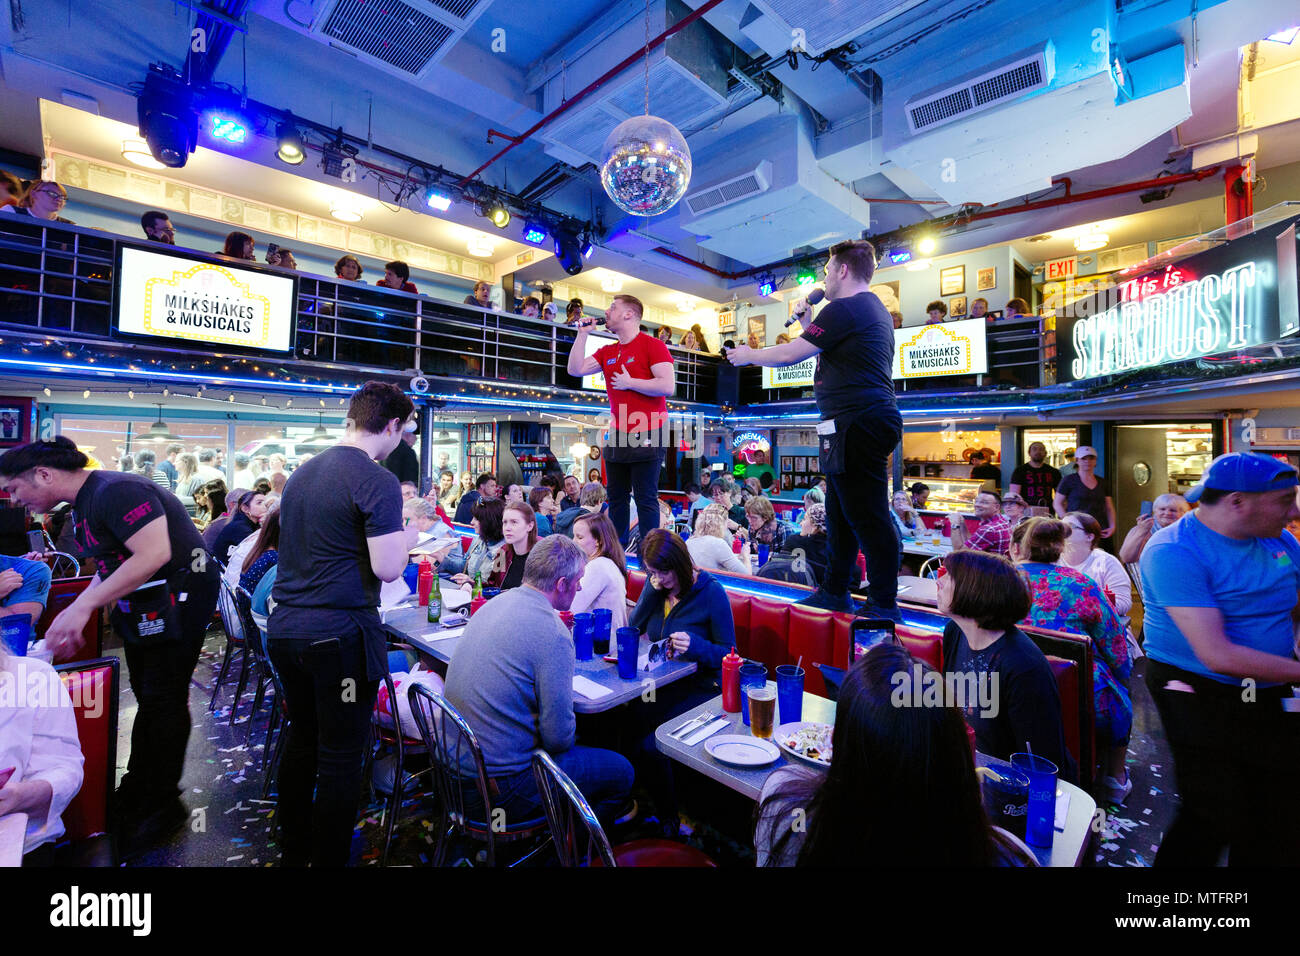 Waiters performing songs from the musicals at Ellens Stardust Diner restaurant, while diners look on, Broadway, New York city USA - Stock Image